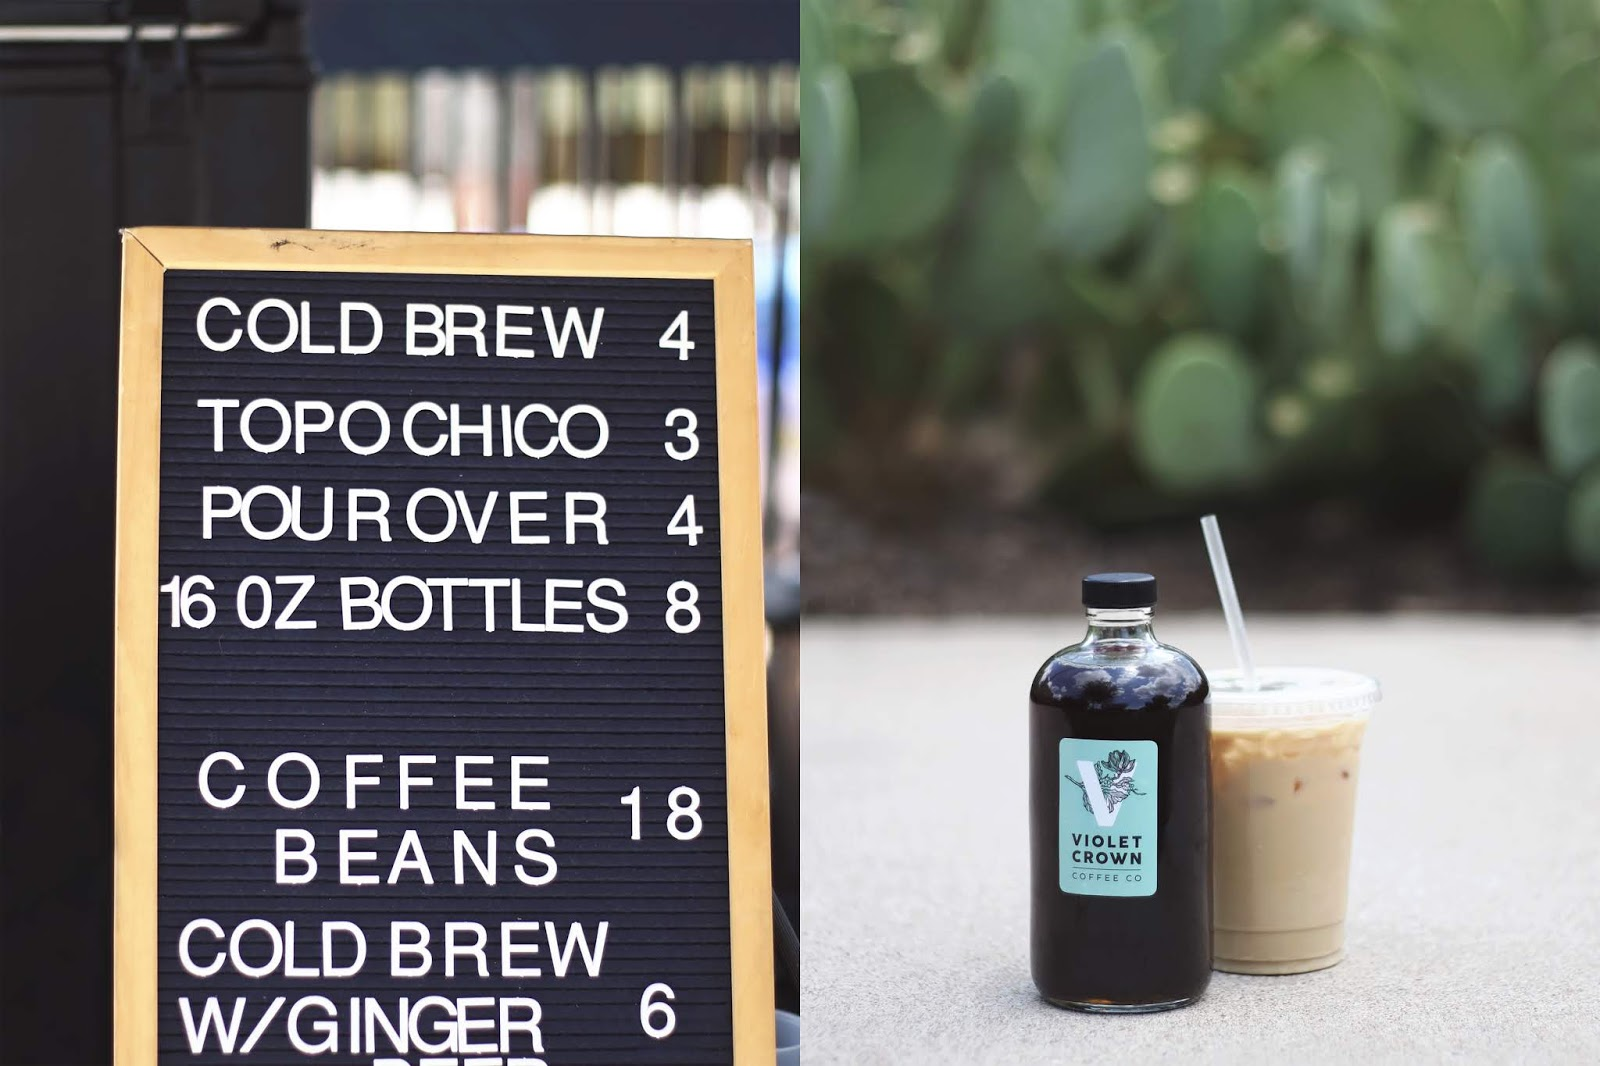 Violet Crown Coffee Austin, Iced Coffee, Cozy Coffee Shop, Coffee Shops Vibe, Cold Brew Coffee